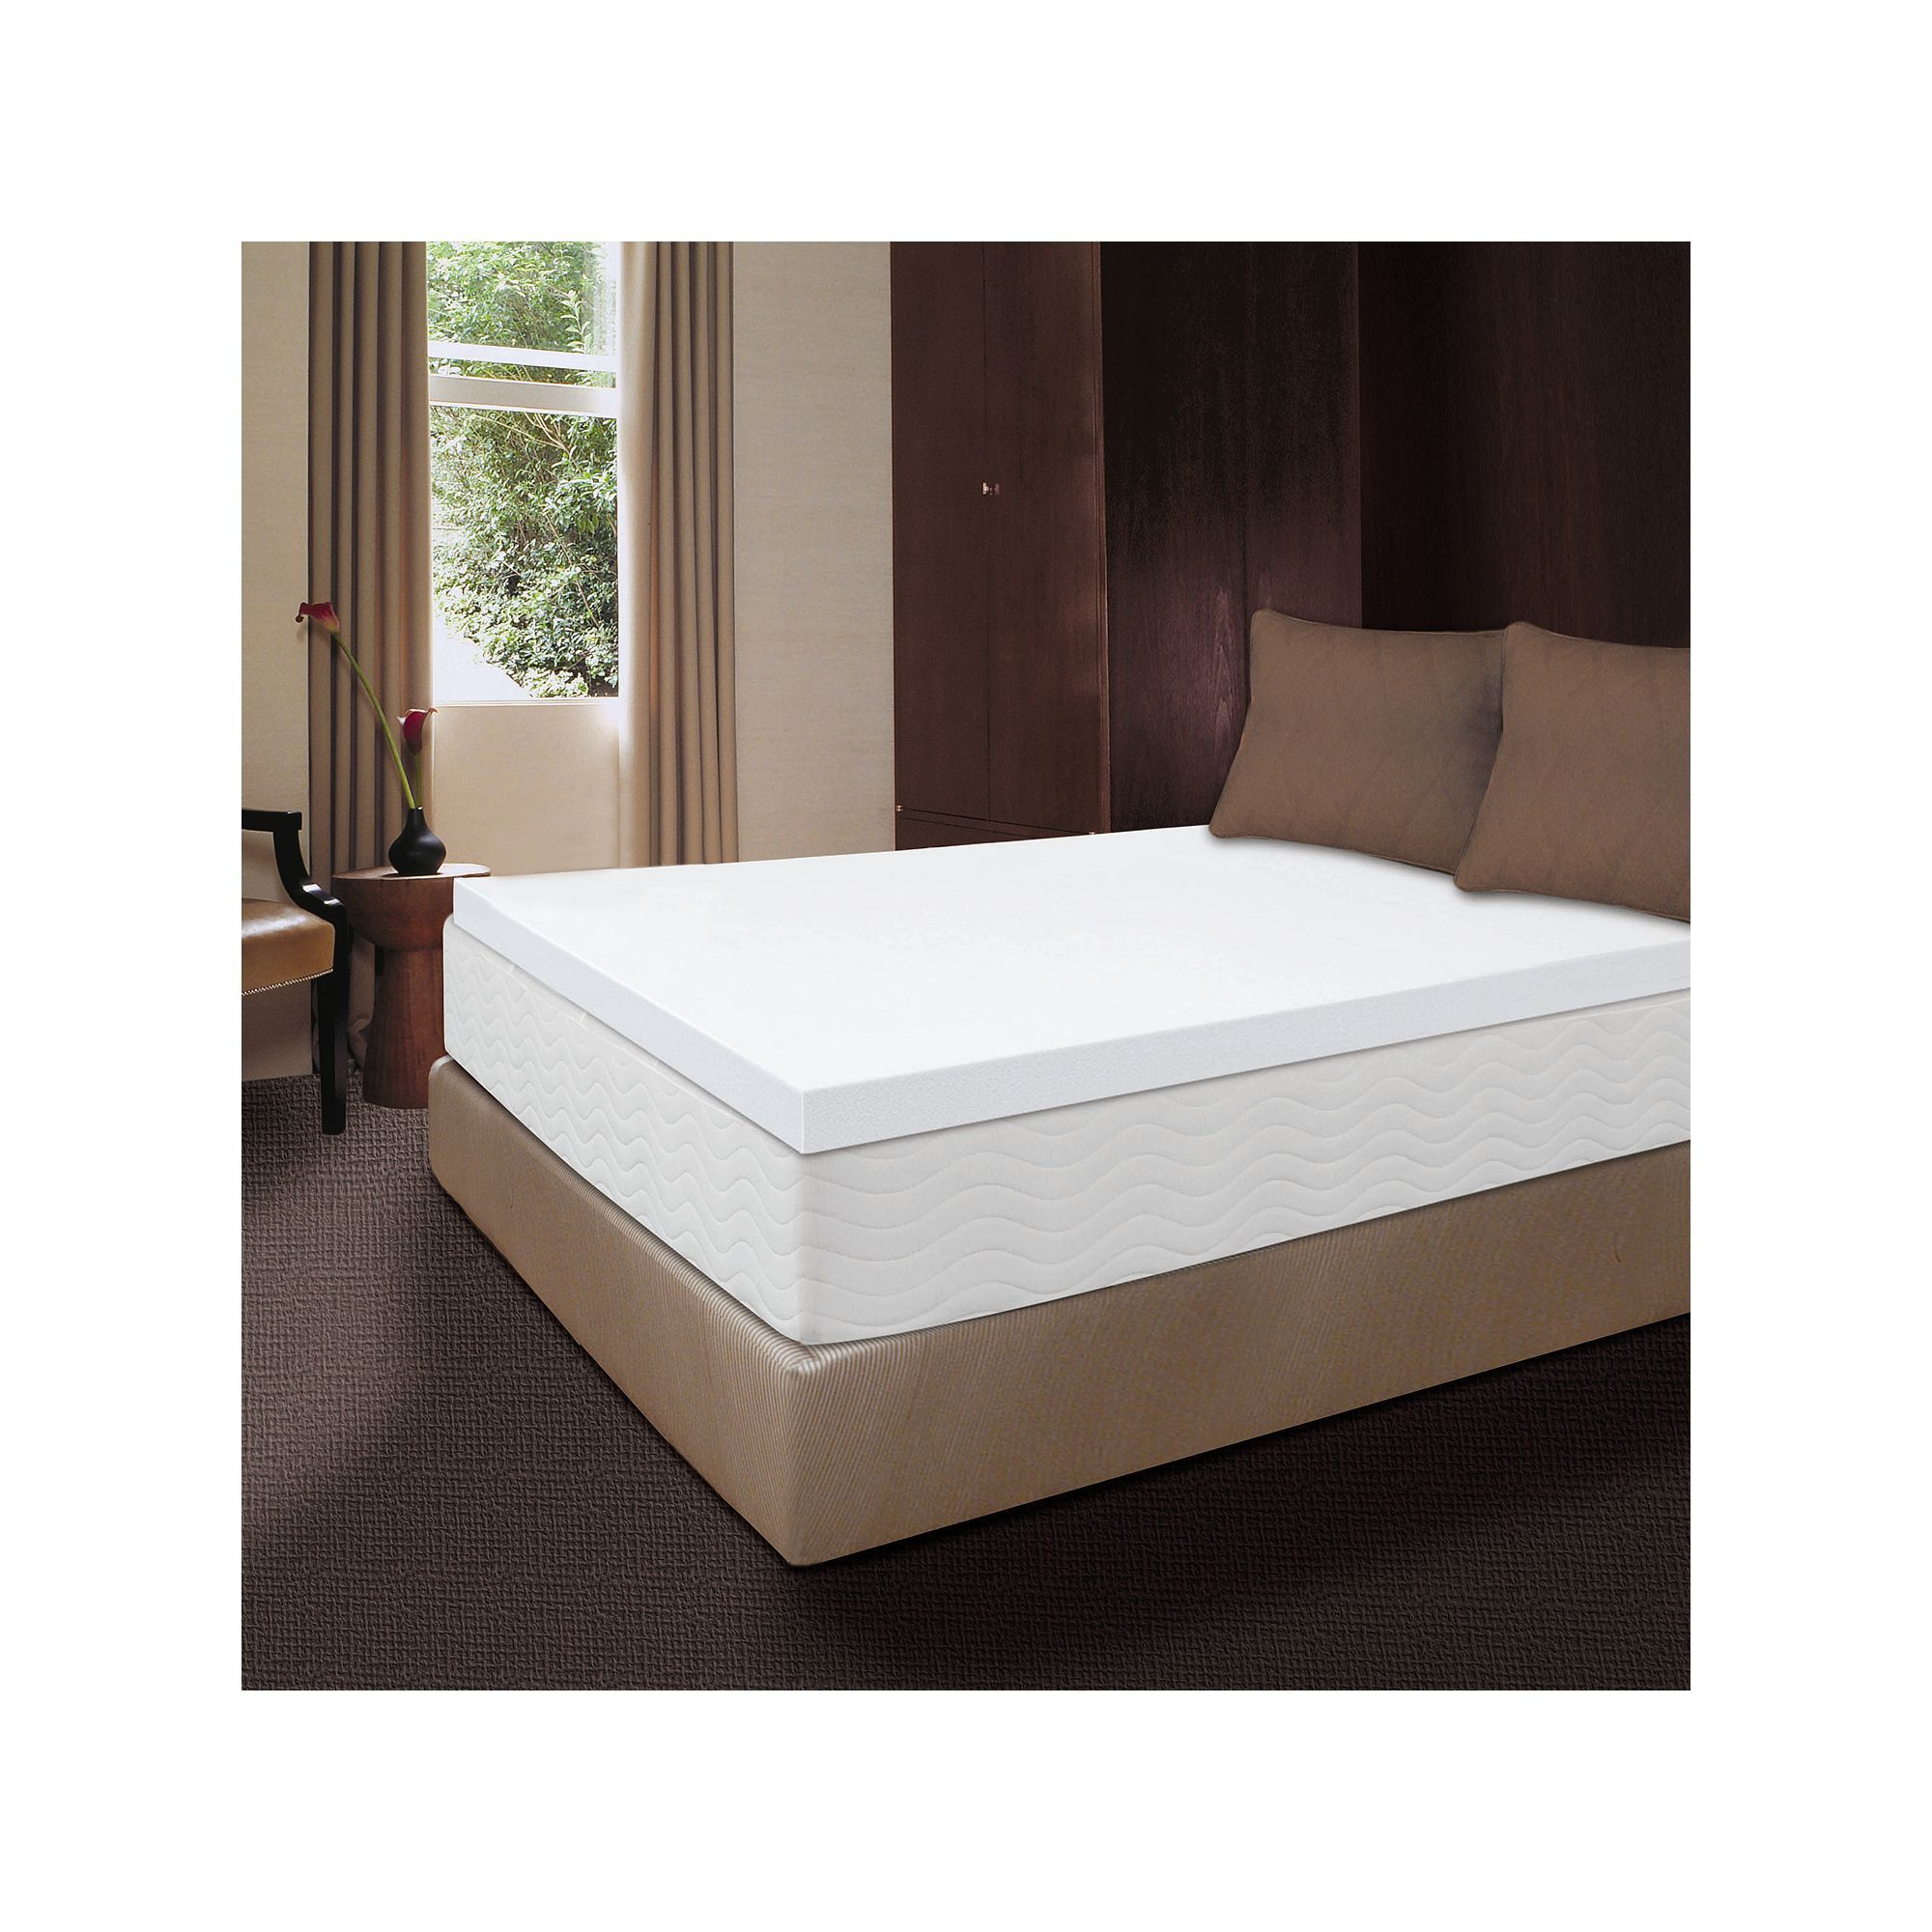 Dream Therapy 2 Inch Memory Foam Mattress Topper Memory Foam Mattress Topper Foam Mattress Queen Memory Foam Mattress